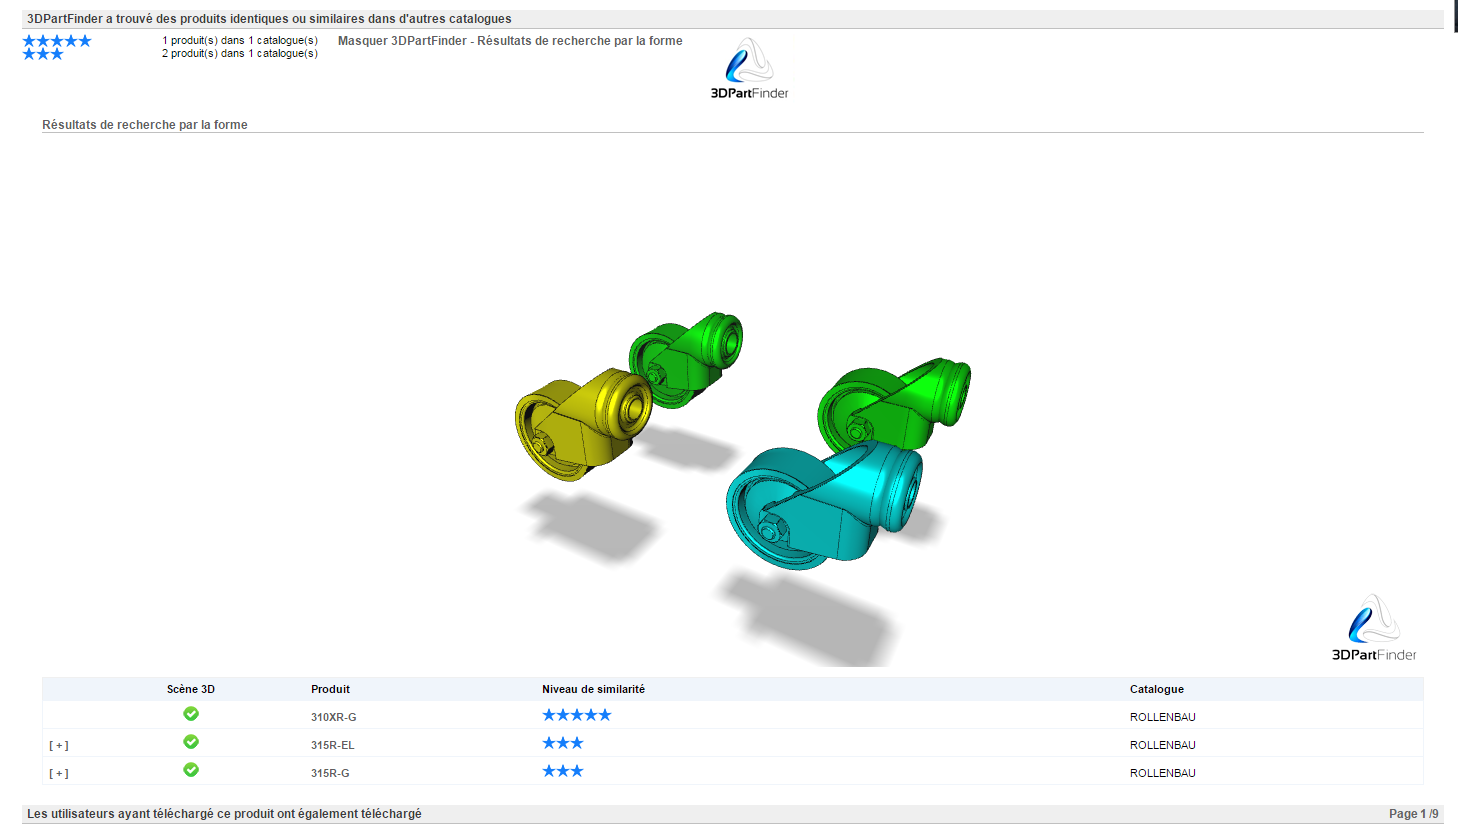 Why we decided to integrate 3DPartFinder Shape-based Search Engine to the TraceParts portal?